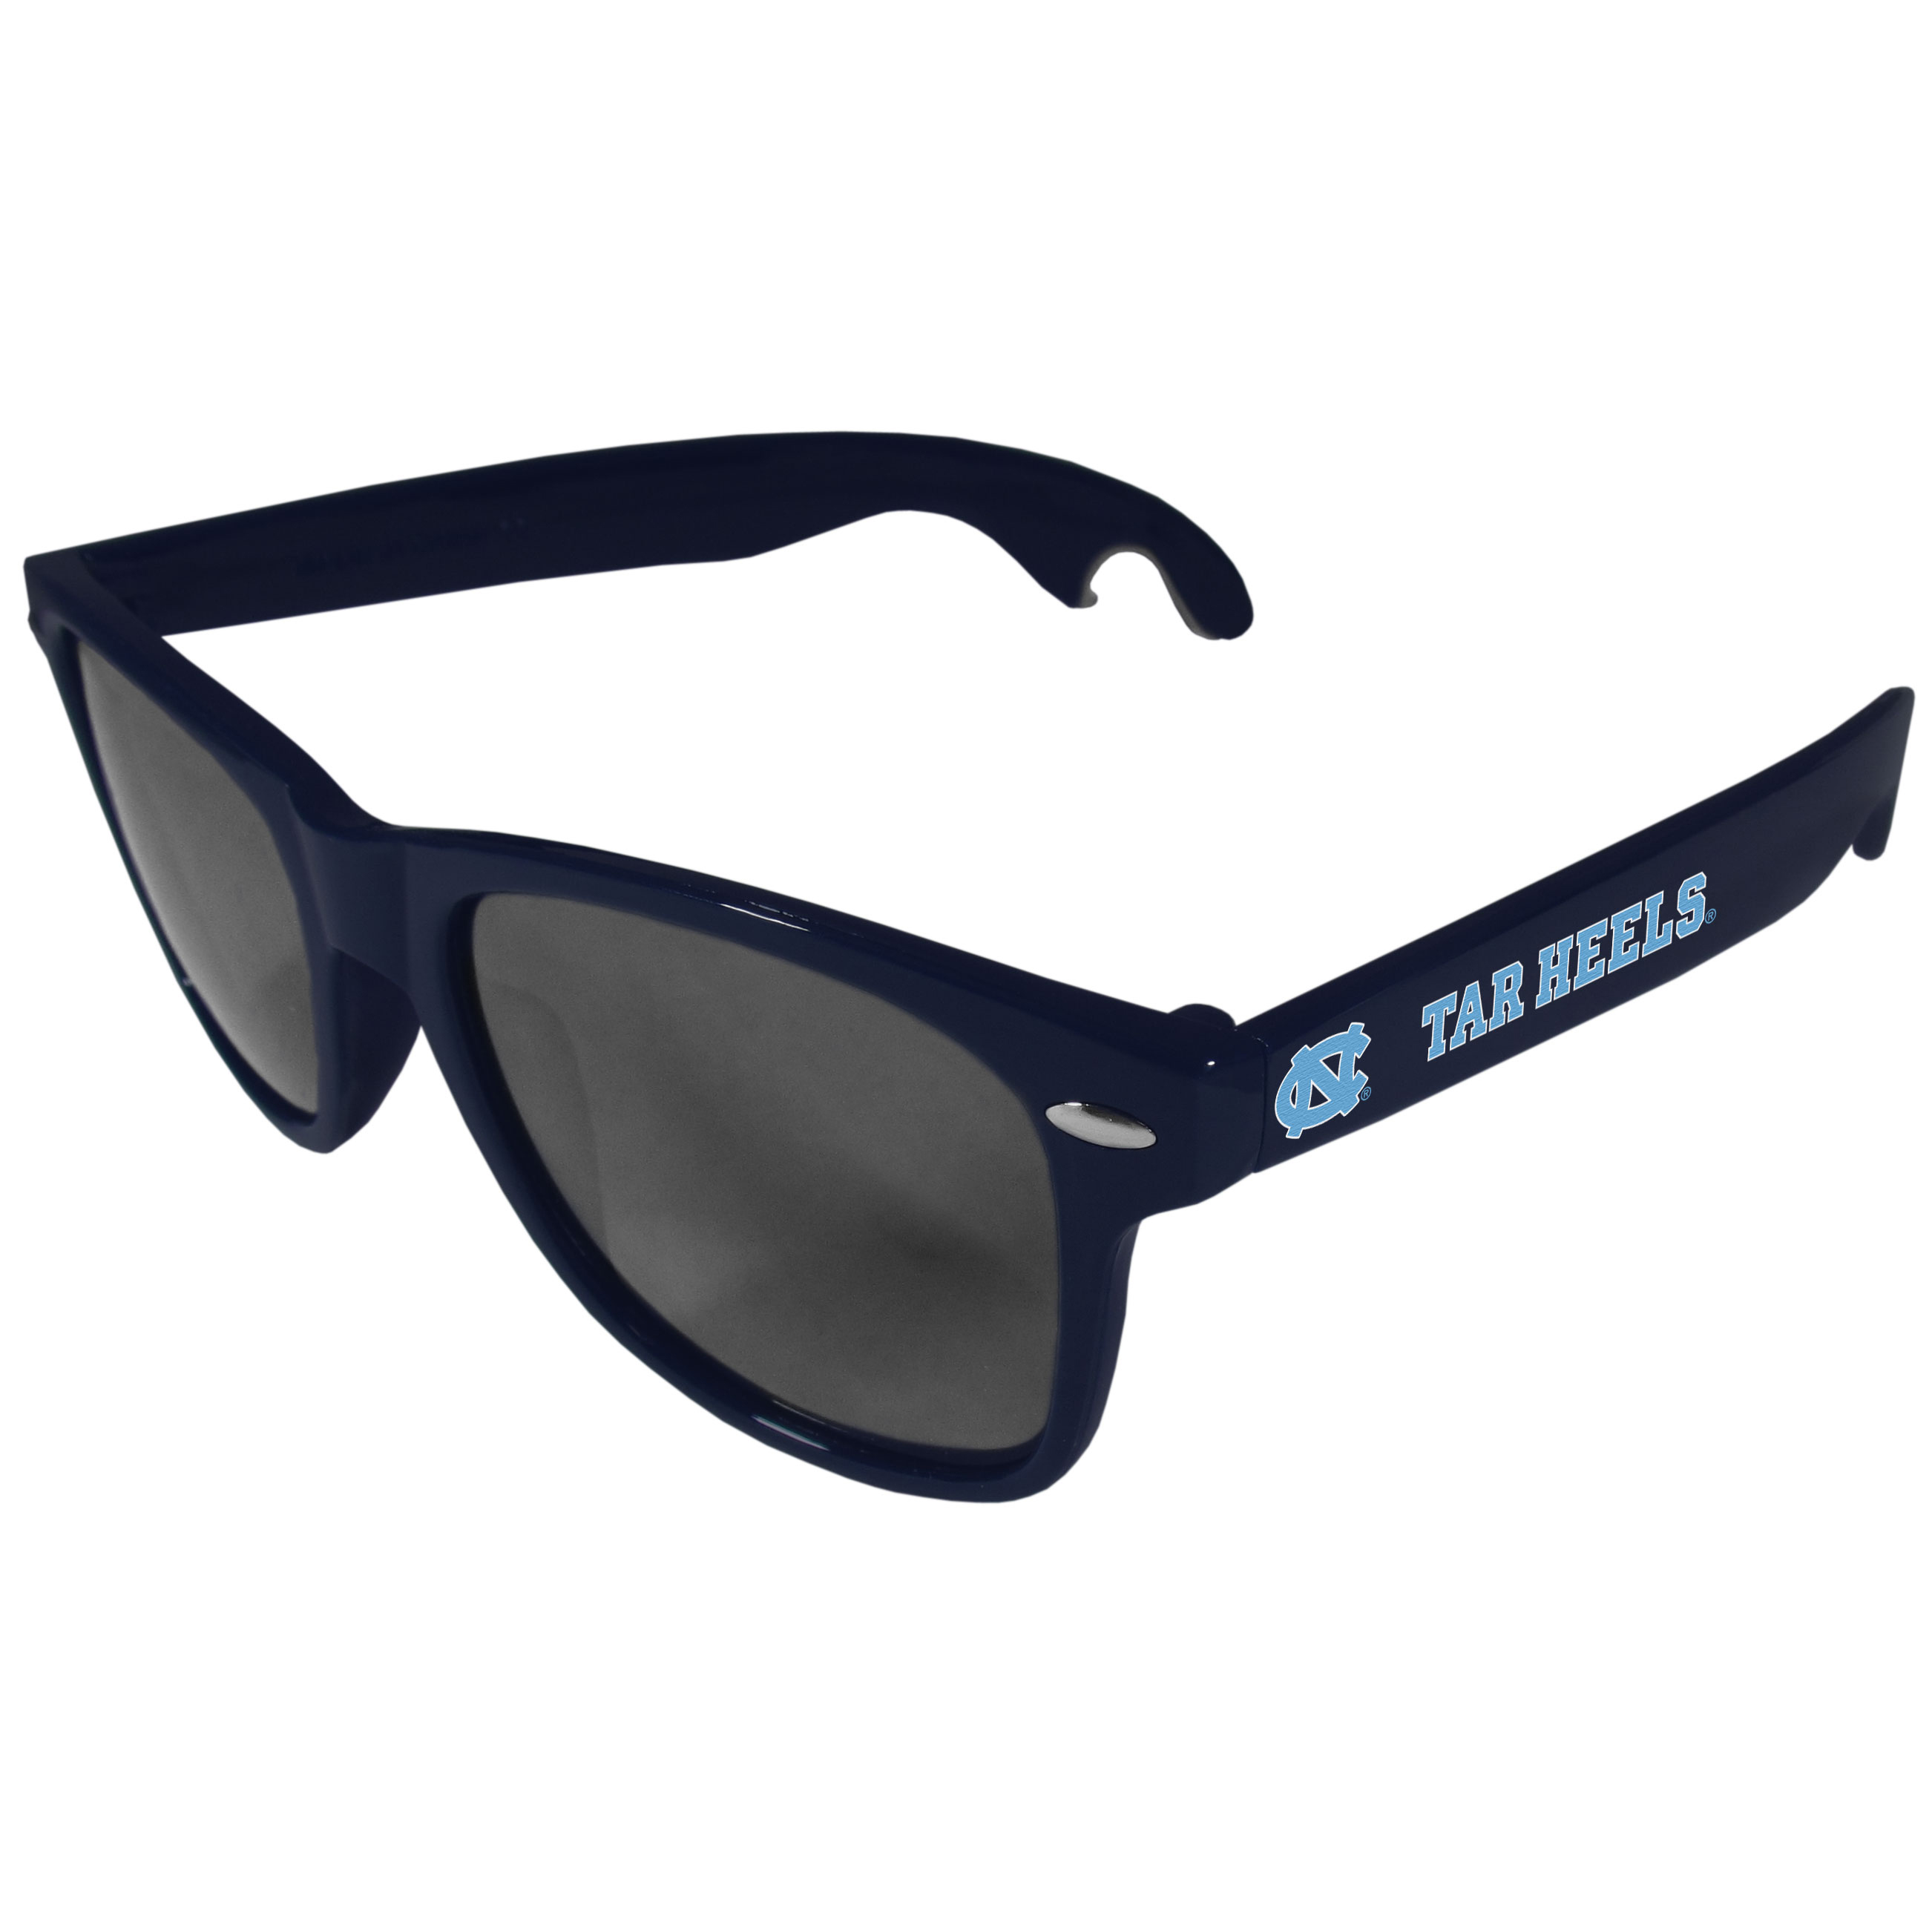 N. Carolina Tar Heels Beachfarer Bottle Opener Sunglasses, Dark Blue - Seriously, these sunglasses open bottles! Keep the party going with these amazing N. Carolina Tar Heels bottle opener sunglasses. The stylish retro frames feature team designs on the arms and functional bottle openers on the end of the arms. Whether you are at the beach or having a backyard BBQ on game day, these shades will keep your eyes protected with 100% UVA/UVB protection and keep you hydrated with the handy bottle opener arms.